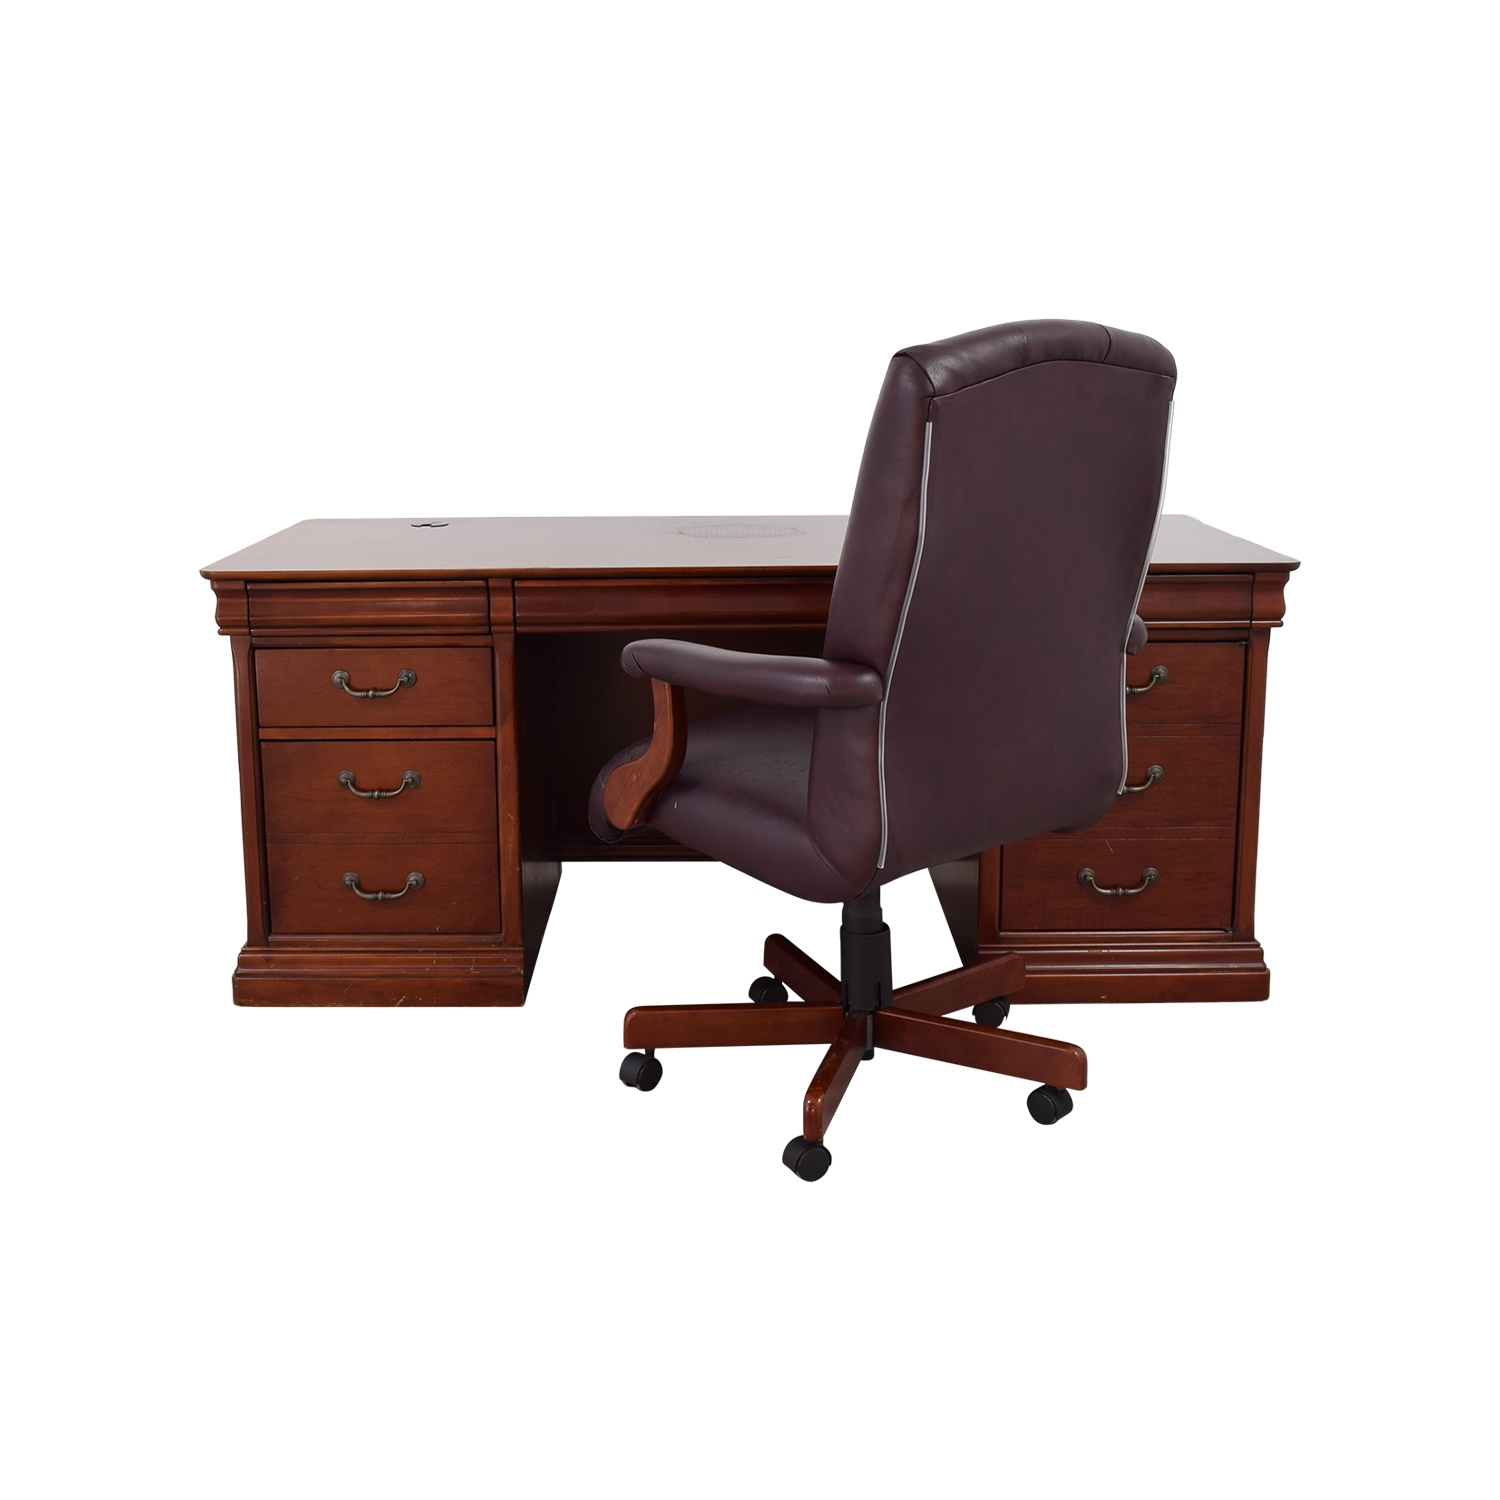 Havertys Havertys Executive Desk with Leather Chair nyc